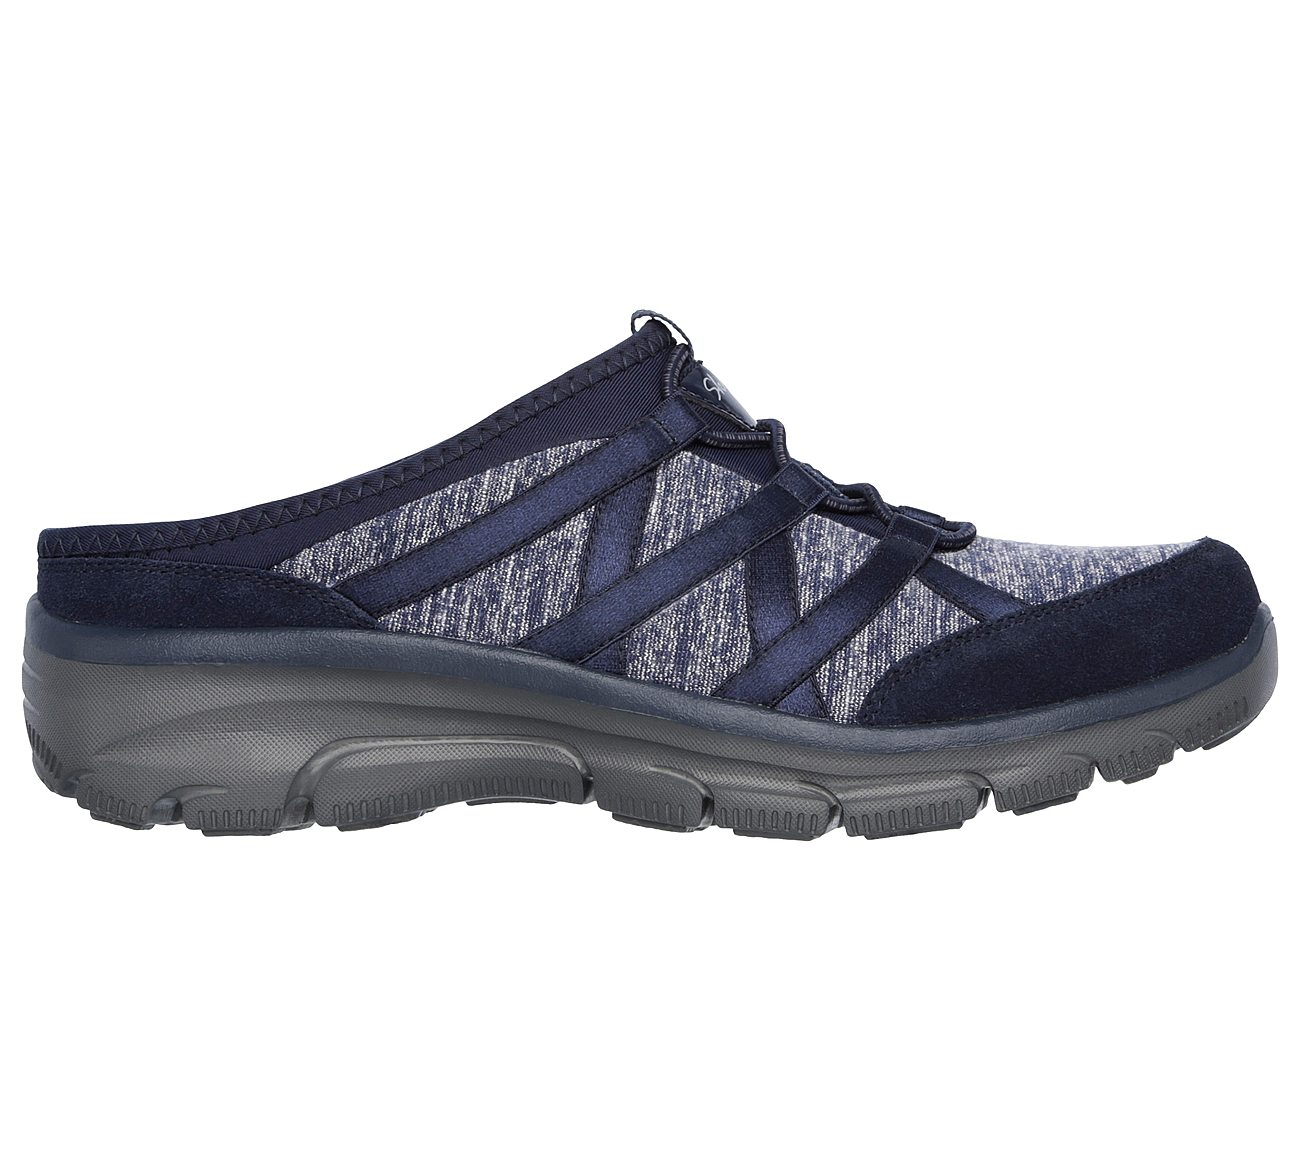 Skechers Relaxed Fit Easy ... Going Rolling Women's Clogs EluBSLC4C